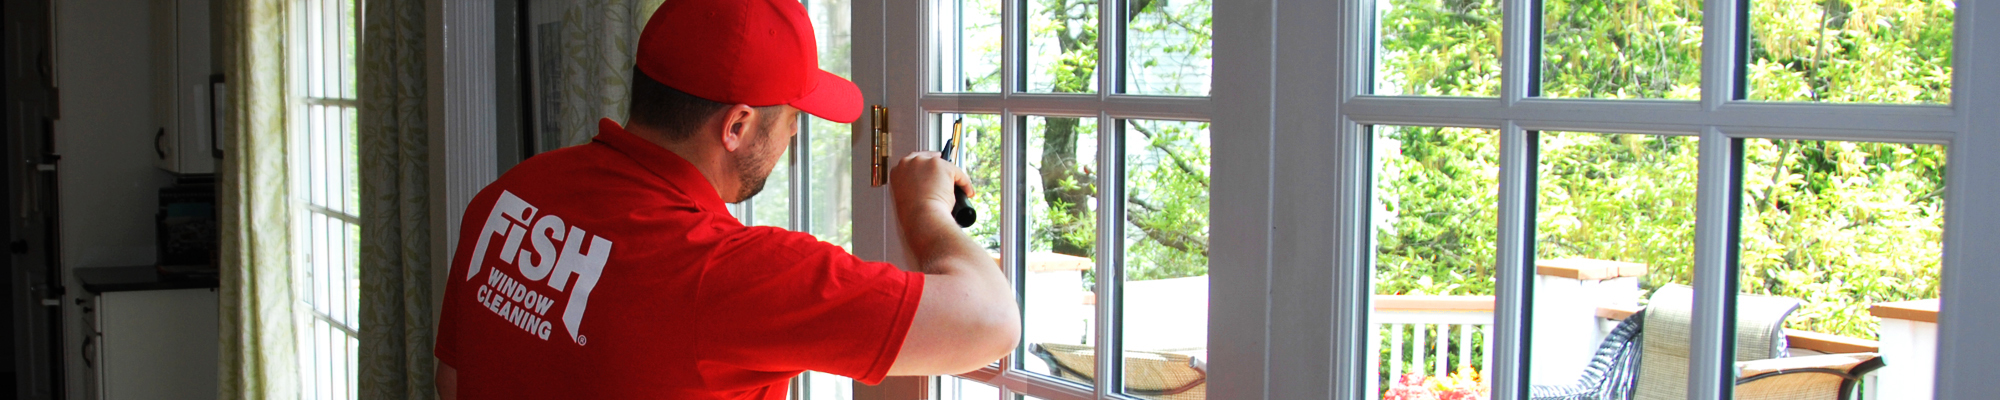 Residential Window Cleaning Services Fish Window